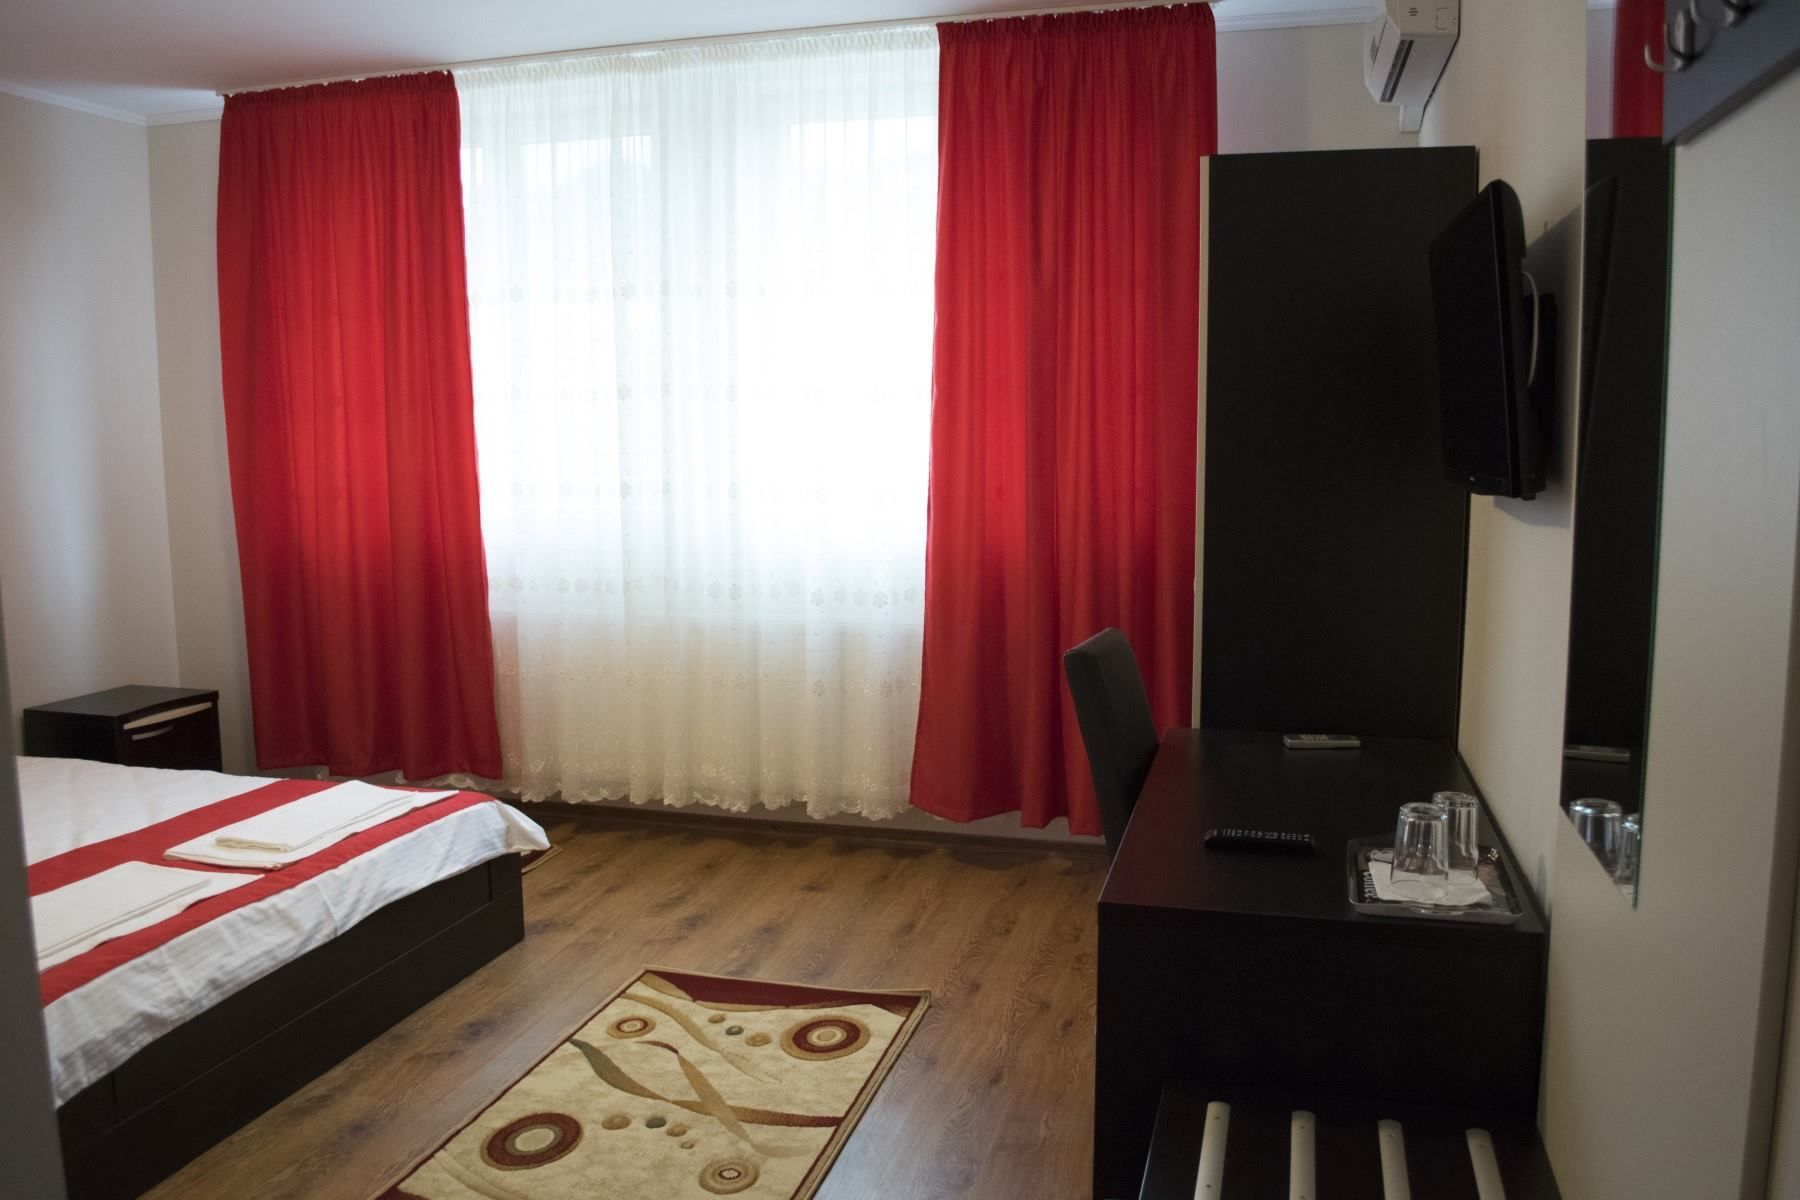 baia mare chat rooms Airbnb baia mare 764 likes 7 talking about this 35 were here a cool renovated flat in the city center of baia mare where you can stay as much you.